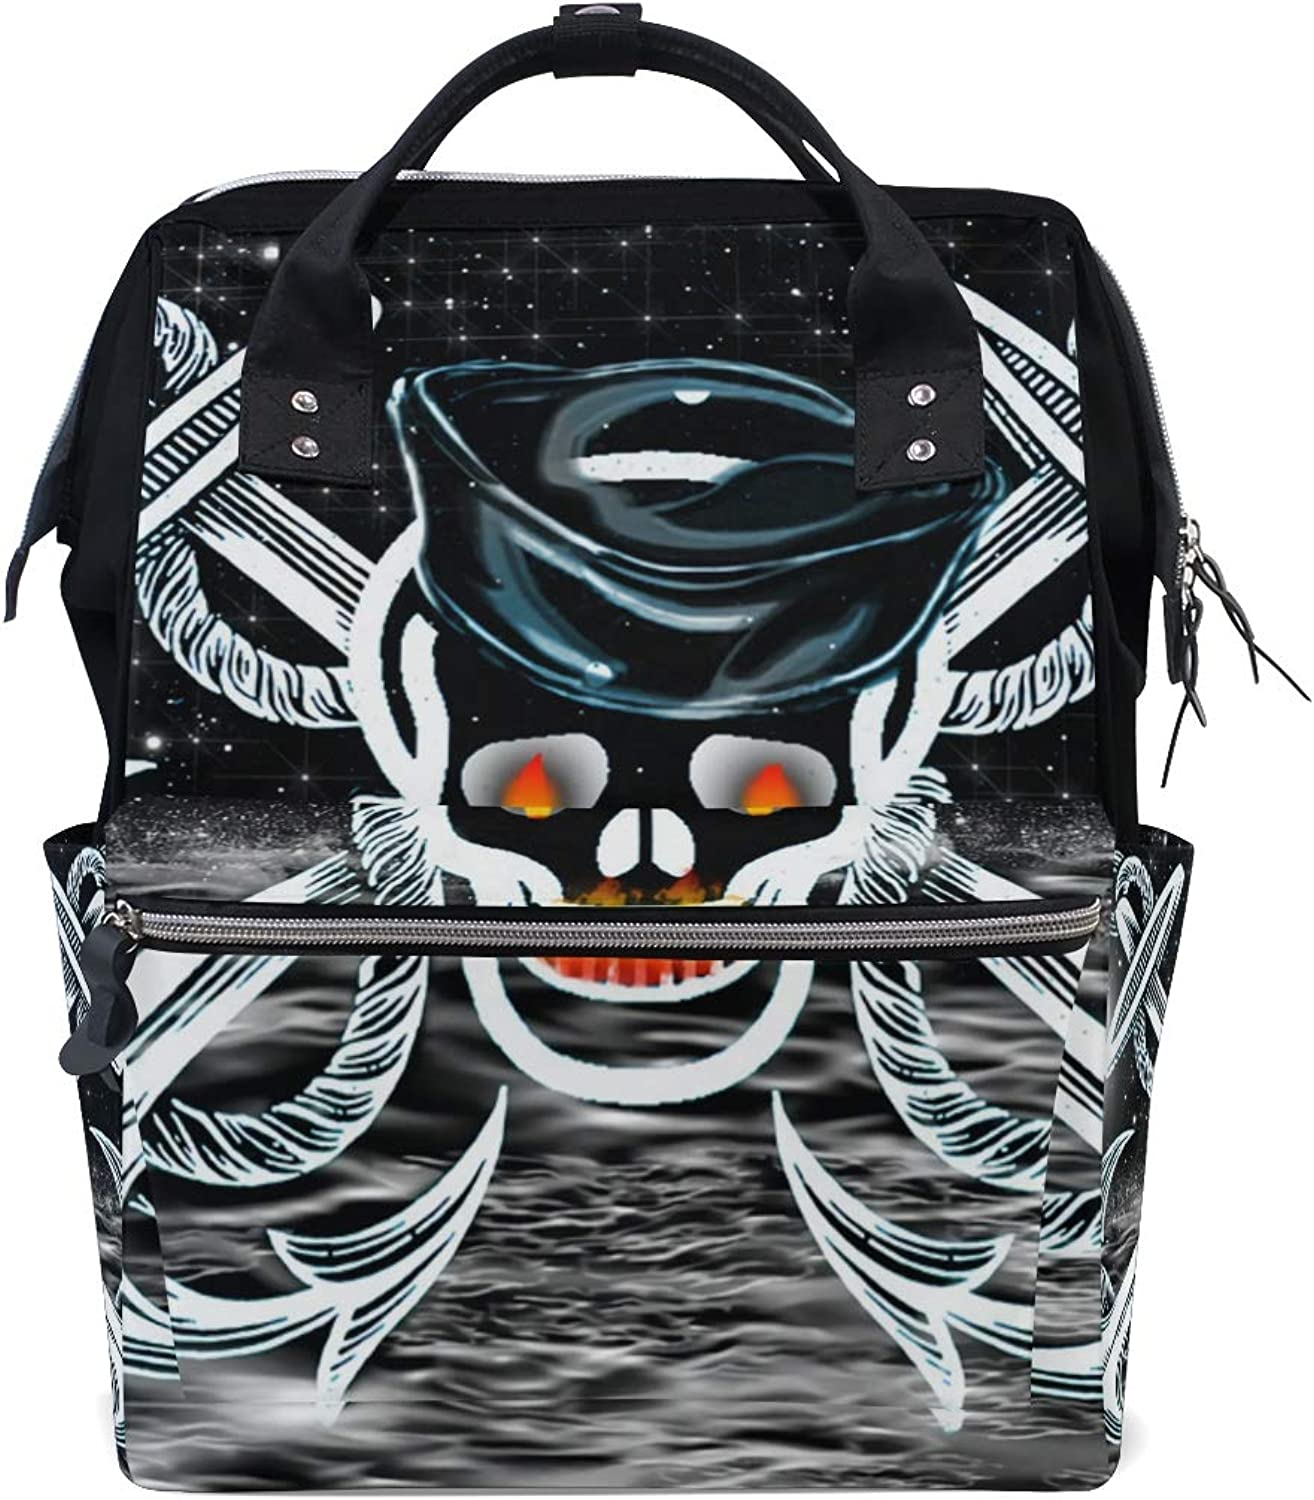 FANTAZIO Backpacks Anchor with Skull and Moon School Bag Canvas Daypack